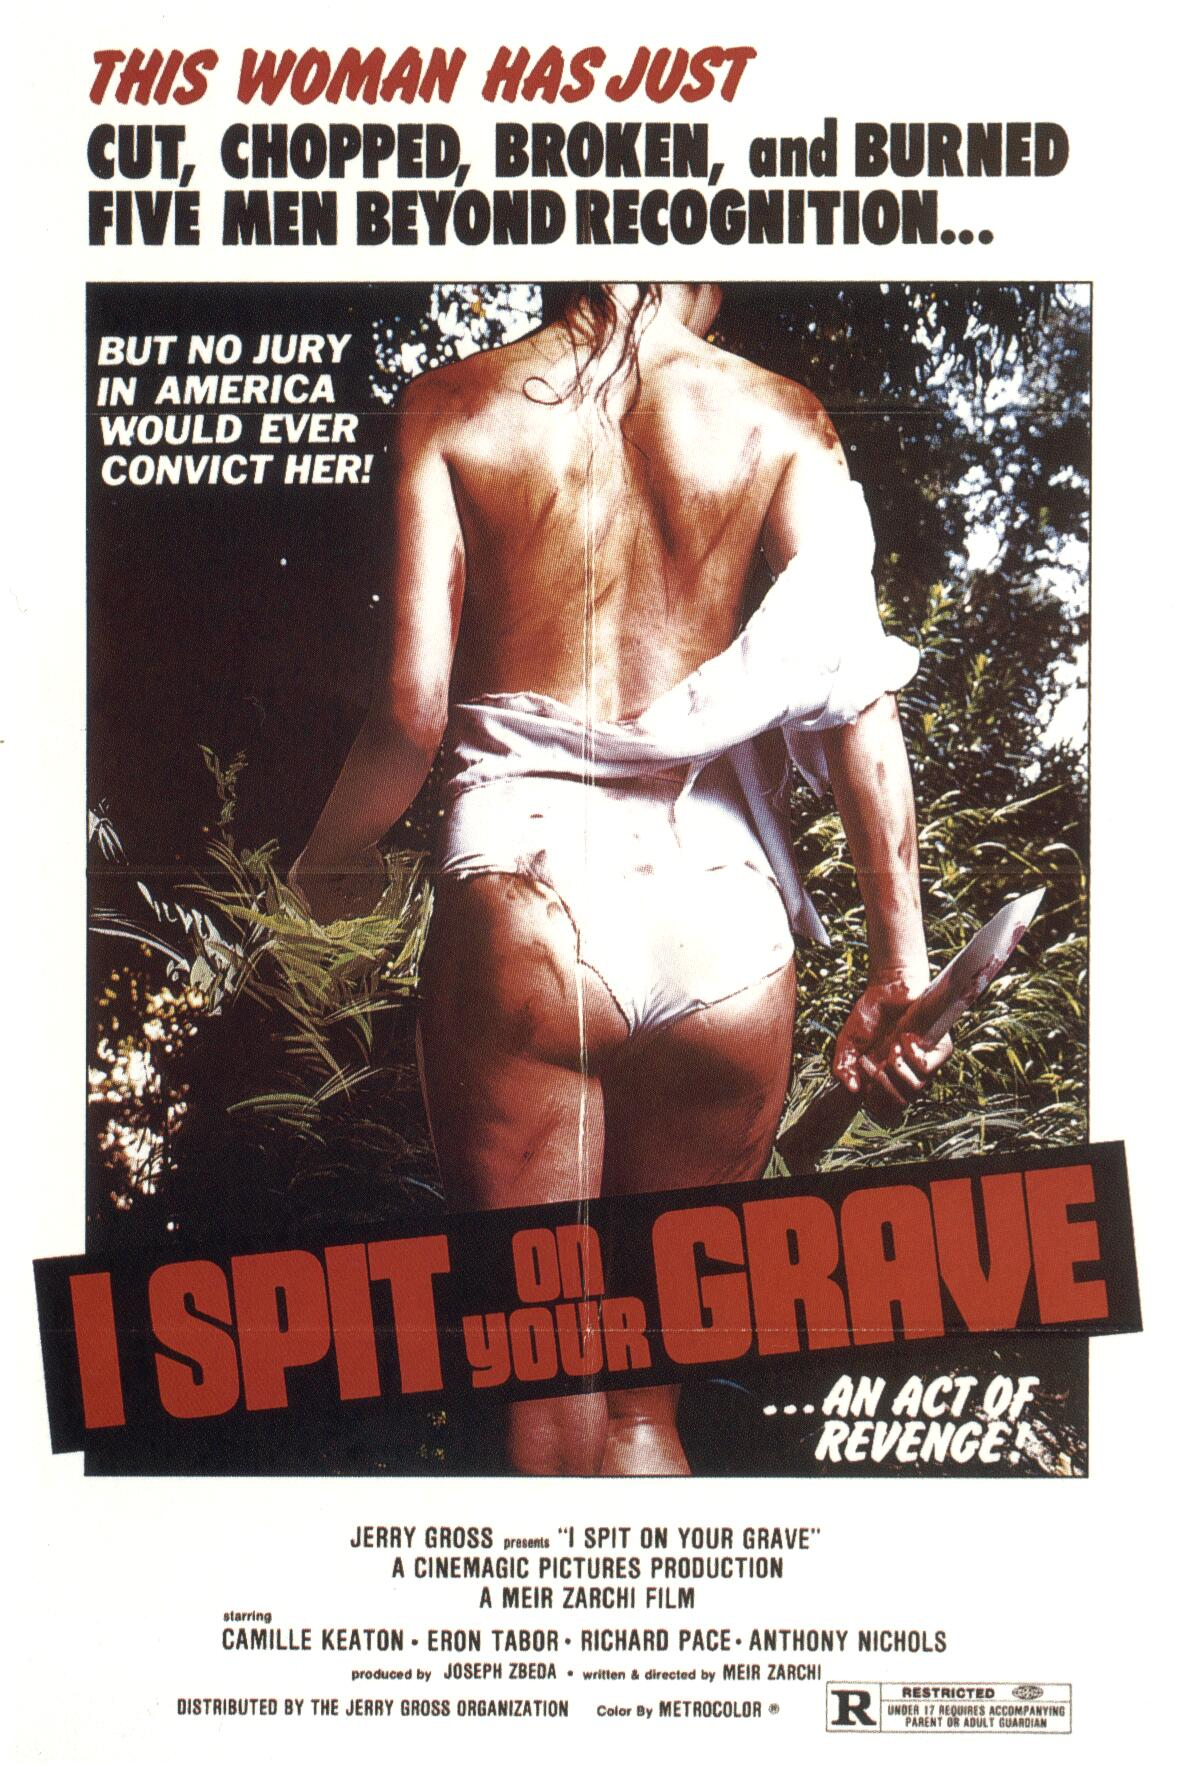 POSTER - I SPIT ON YOUR GRAVE (DAY OF THE WOMAN).JPG